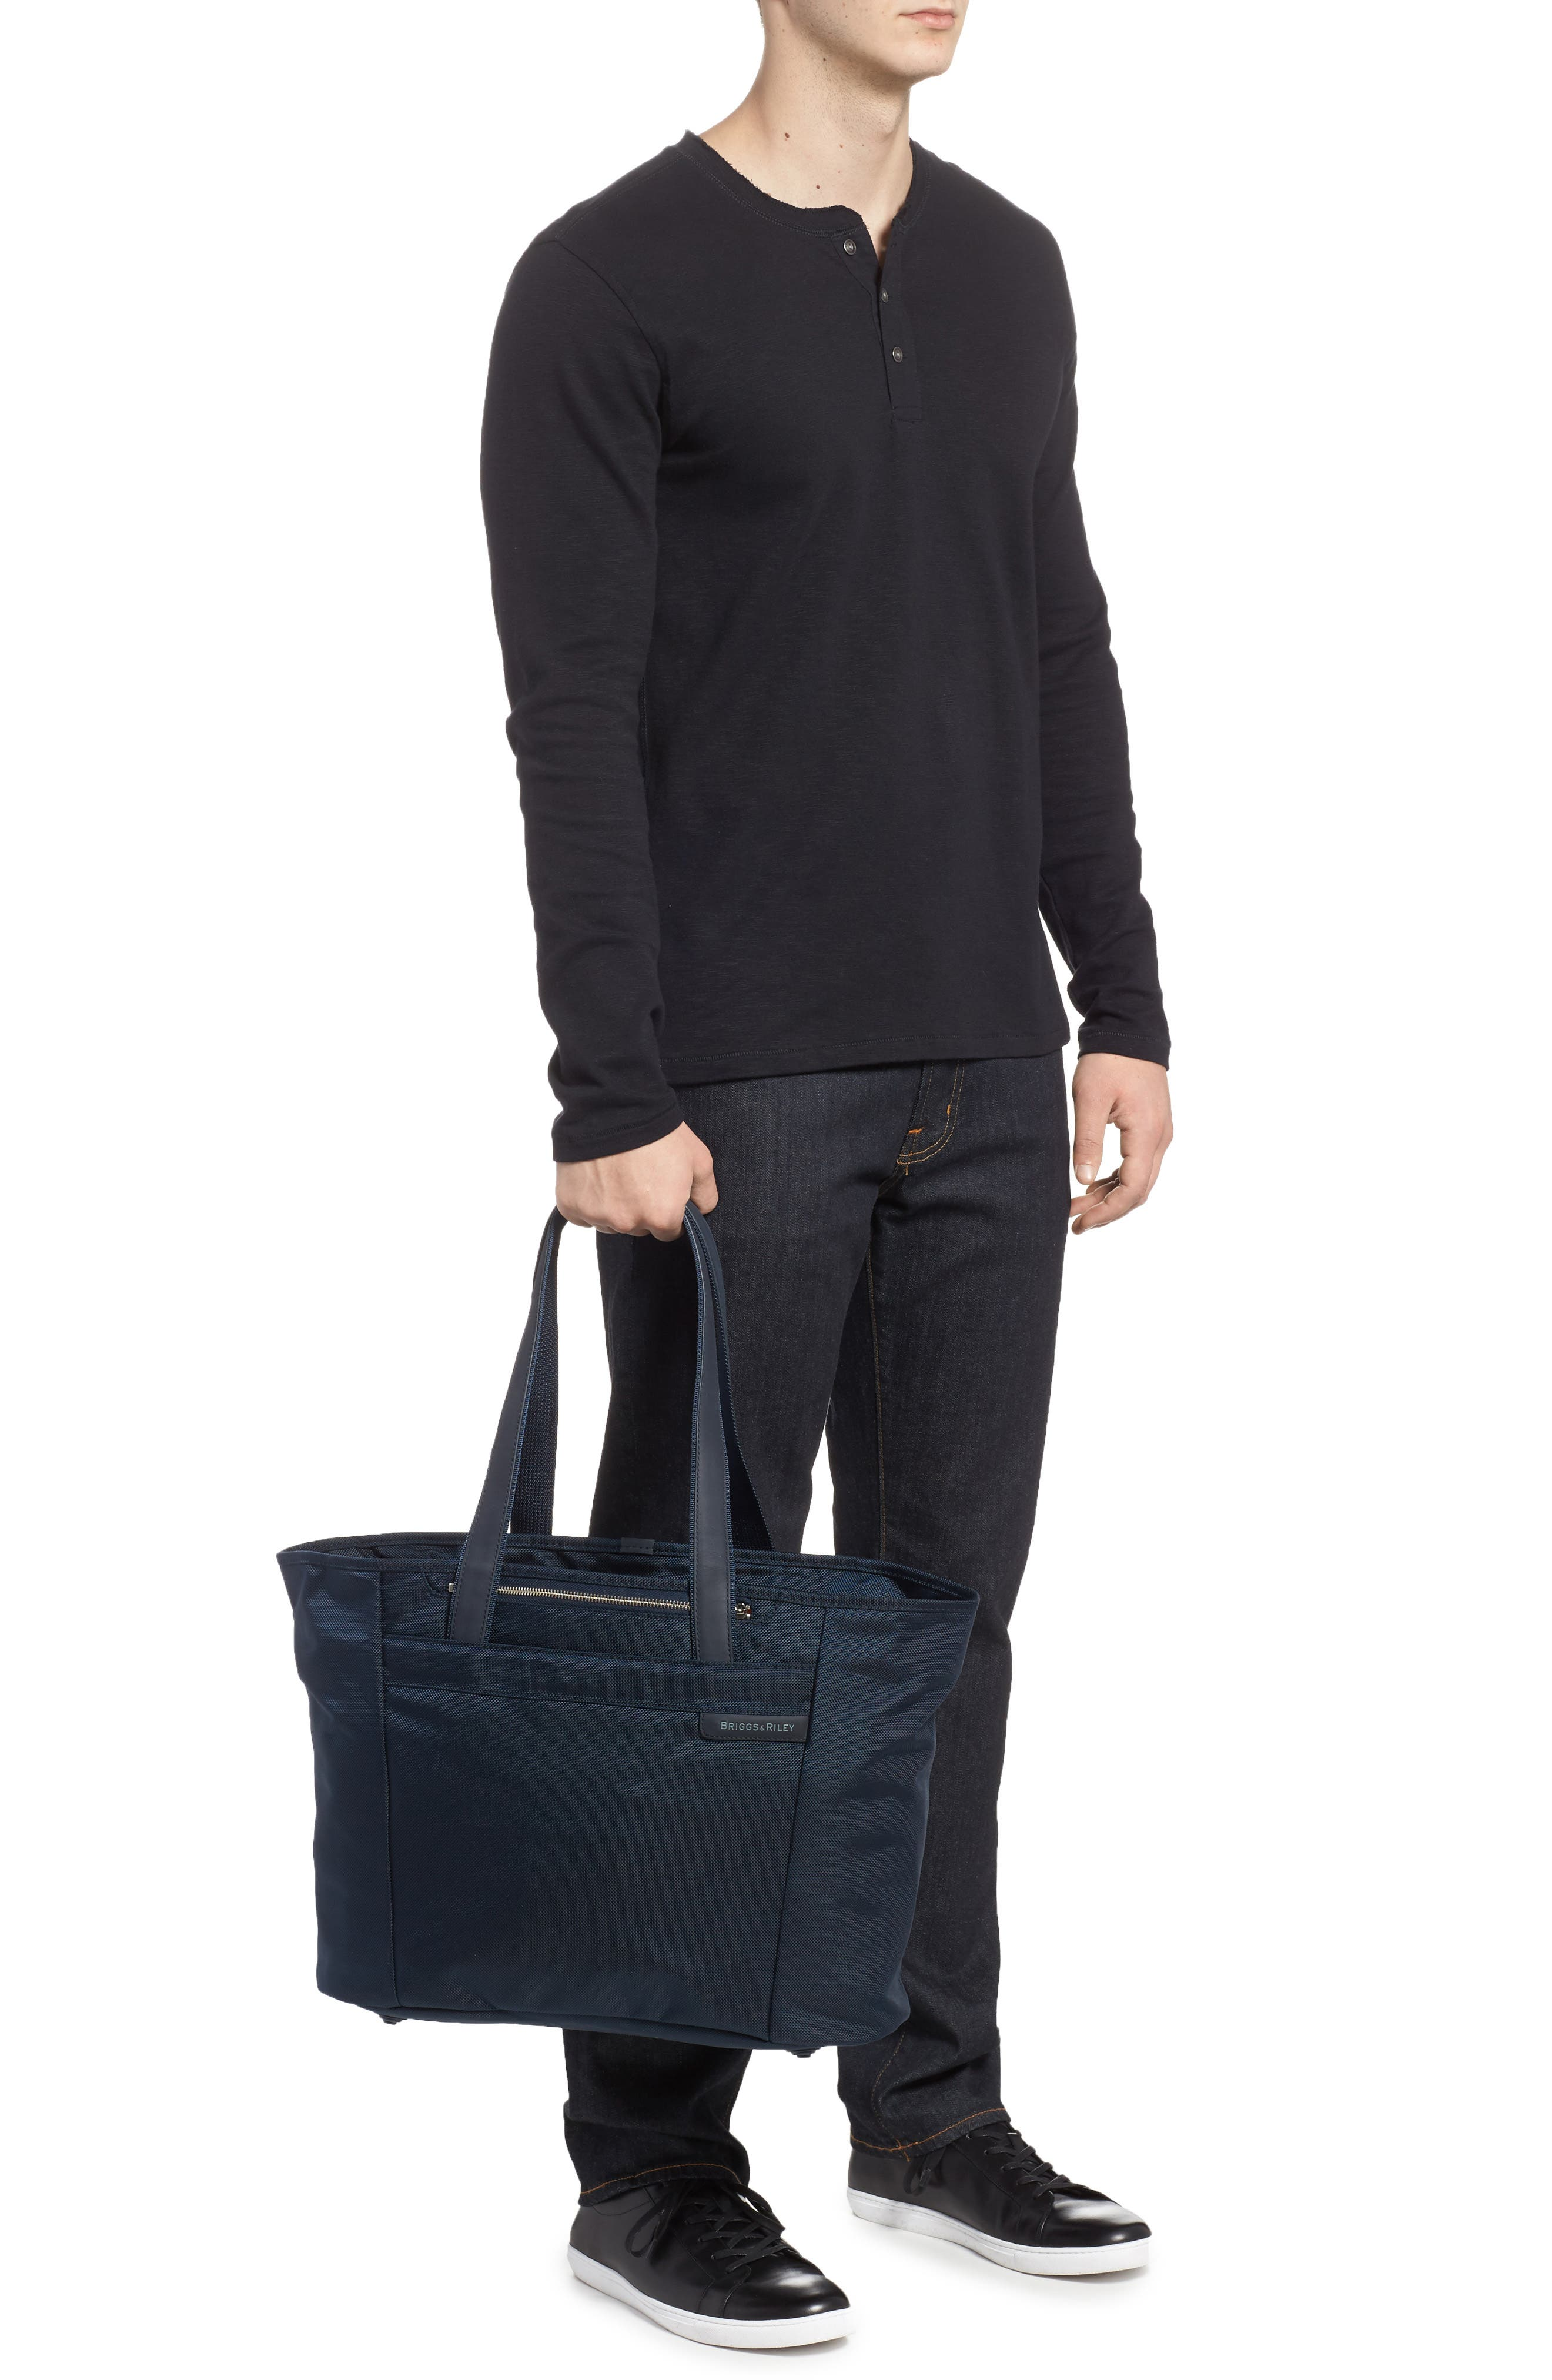 Ltd. Edition Tote Bag,                             Alternate thumbnail 2, color,                             NAVY